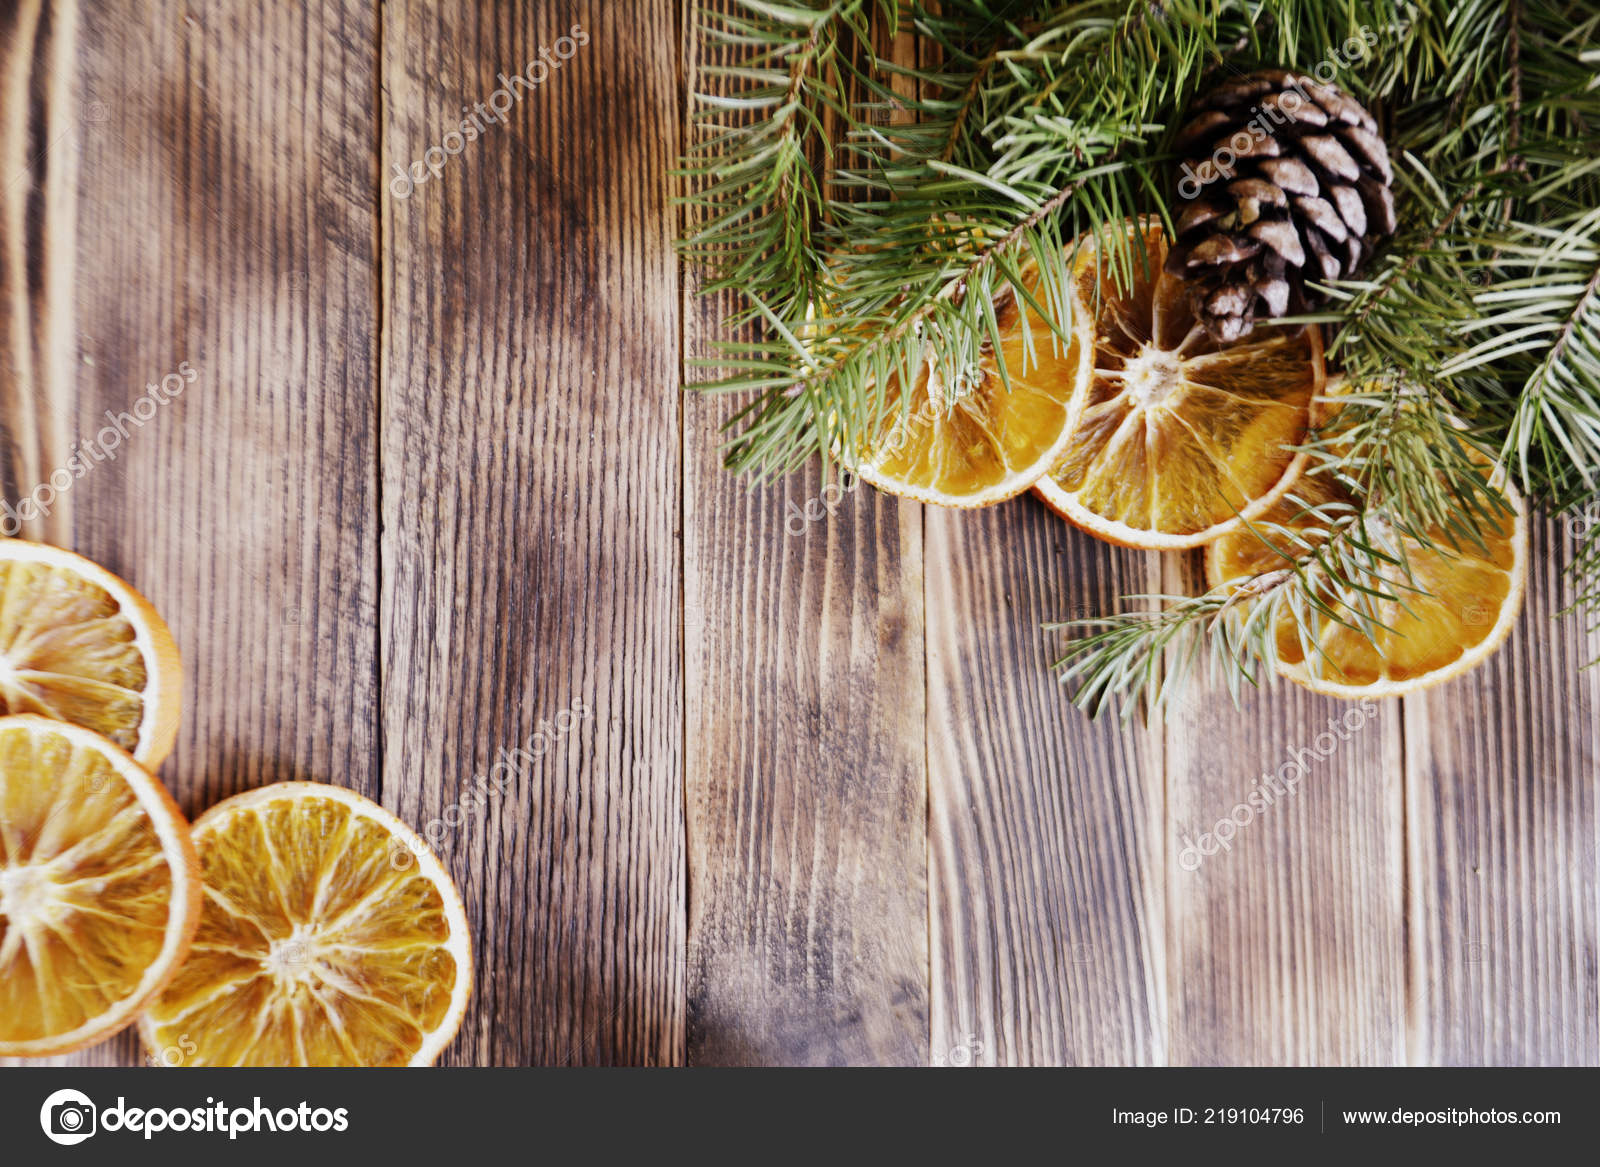 Fir Tree Branches Pine Cones Dried Oranges Christmas New Year